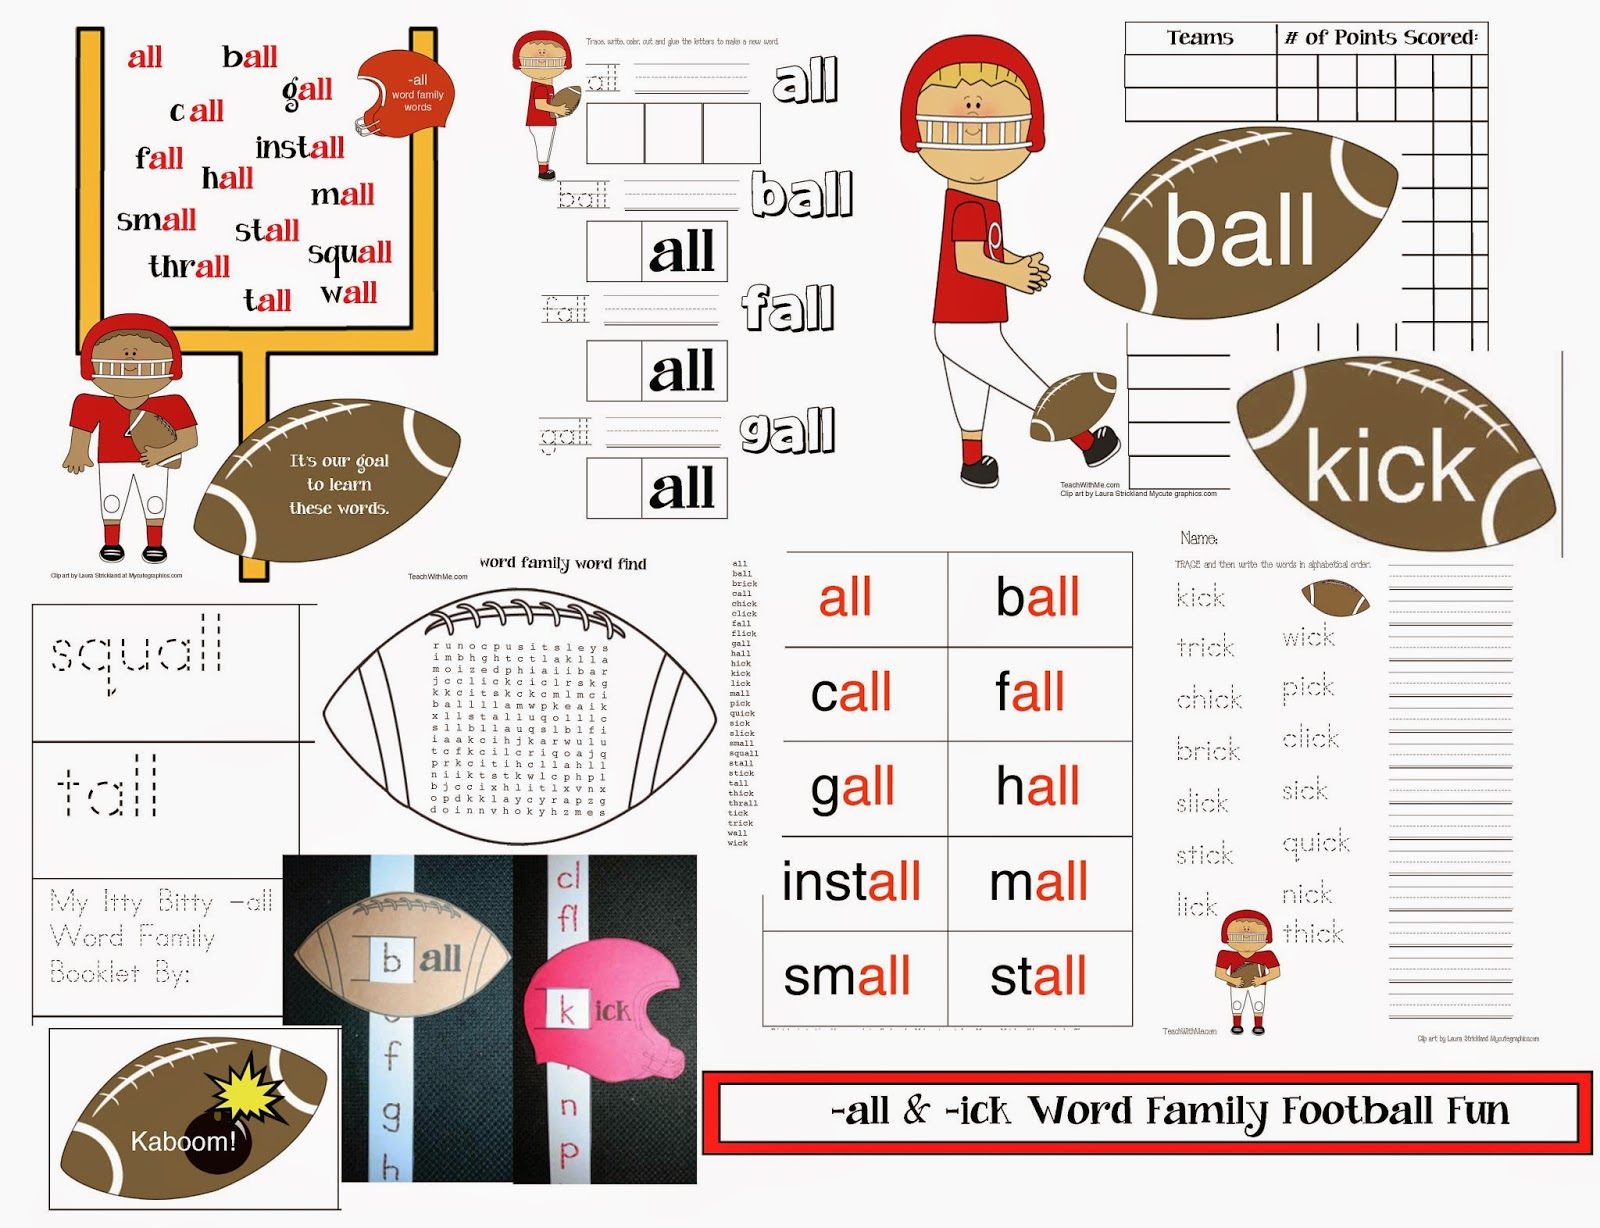 math worksheet : ick word family worksheets for kindergarten  the ick word family  : Football Math Worksheets